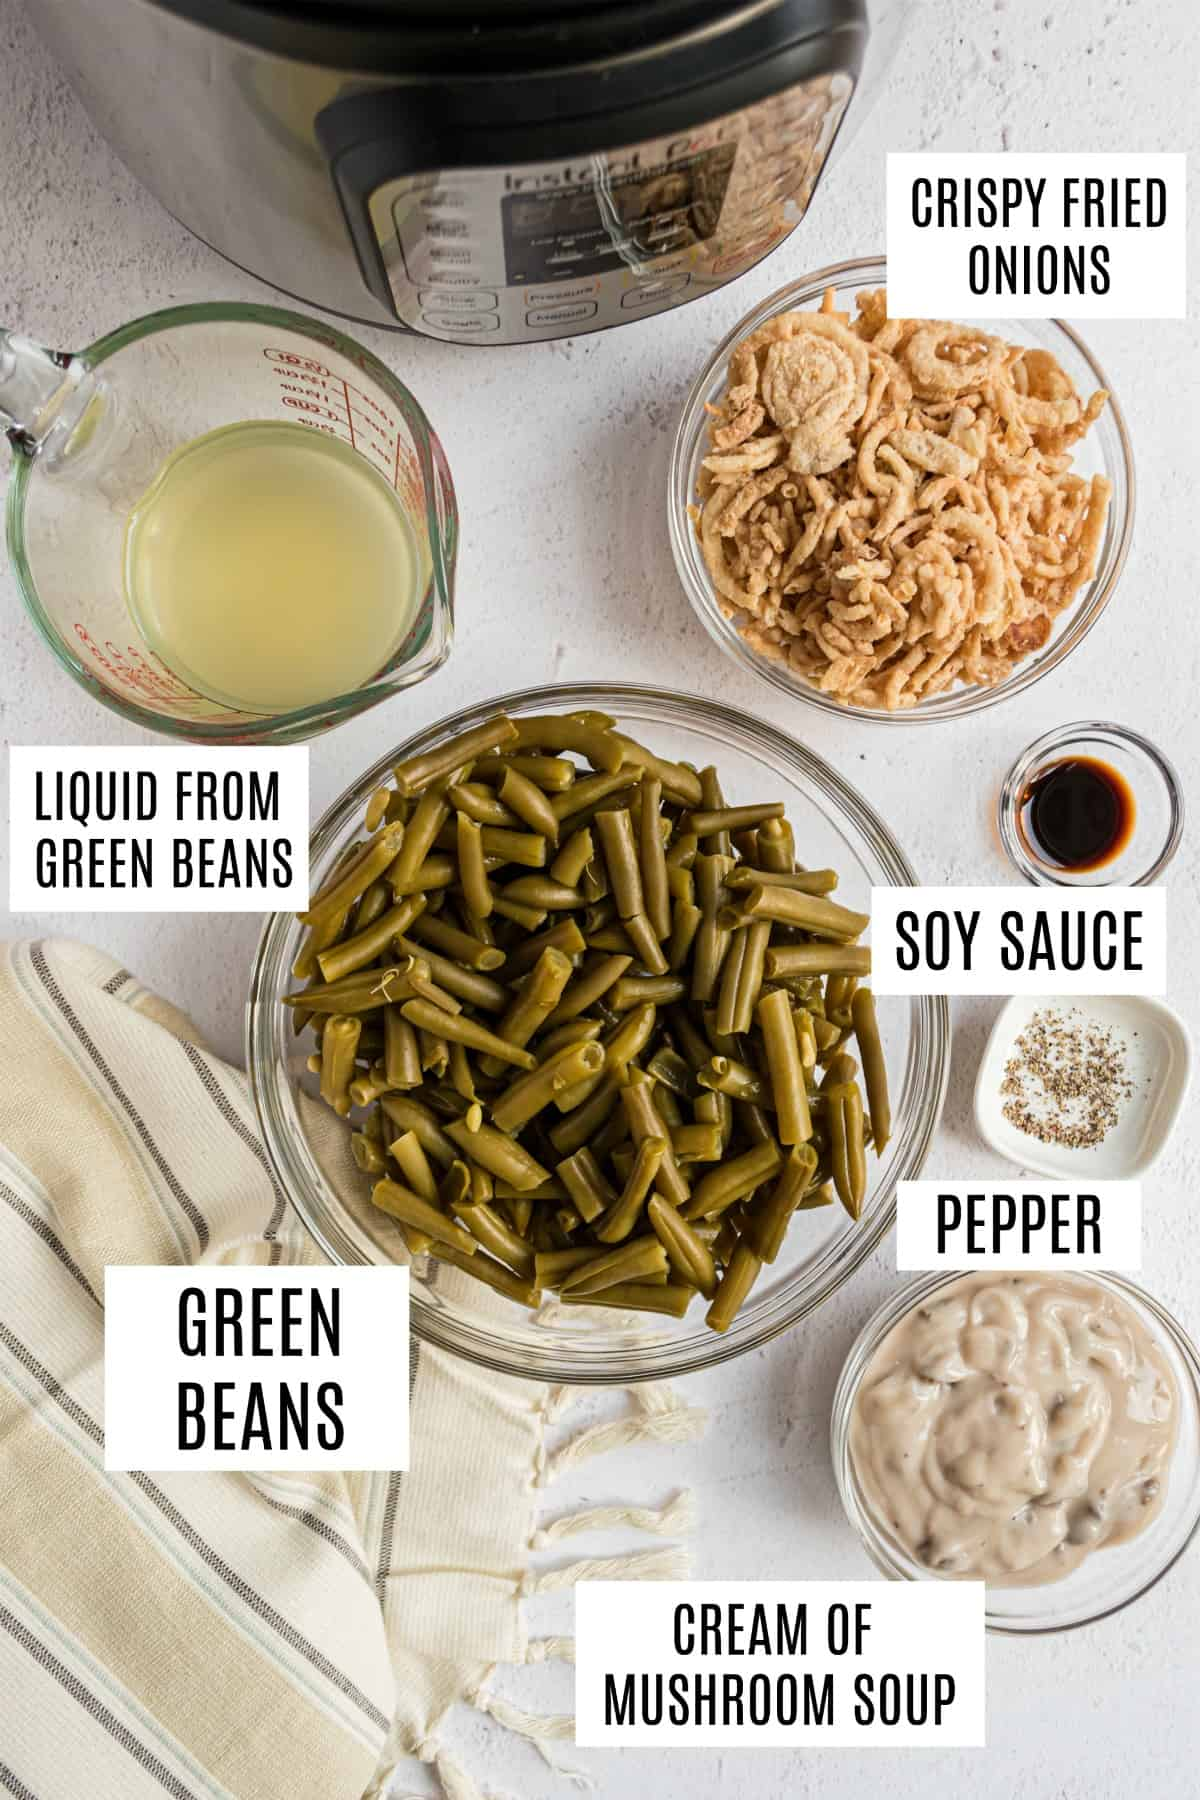 Ingredients to make green bean casserole in the pressure cooker.